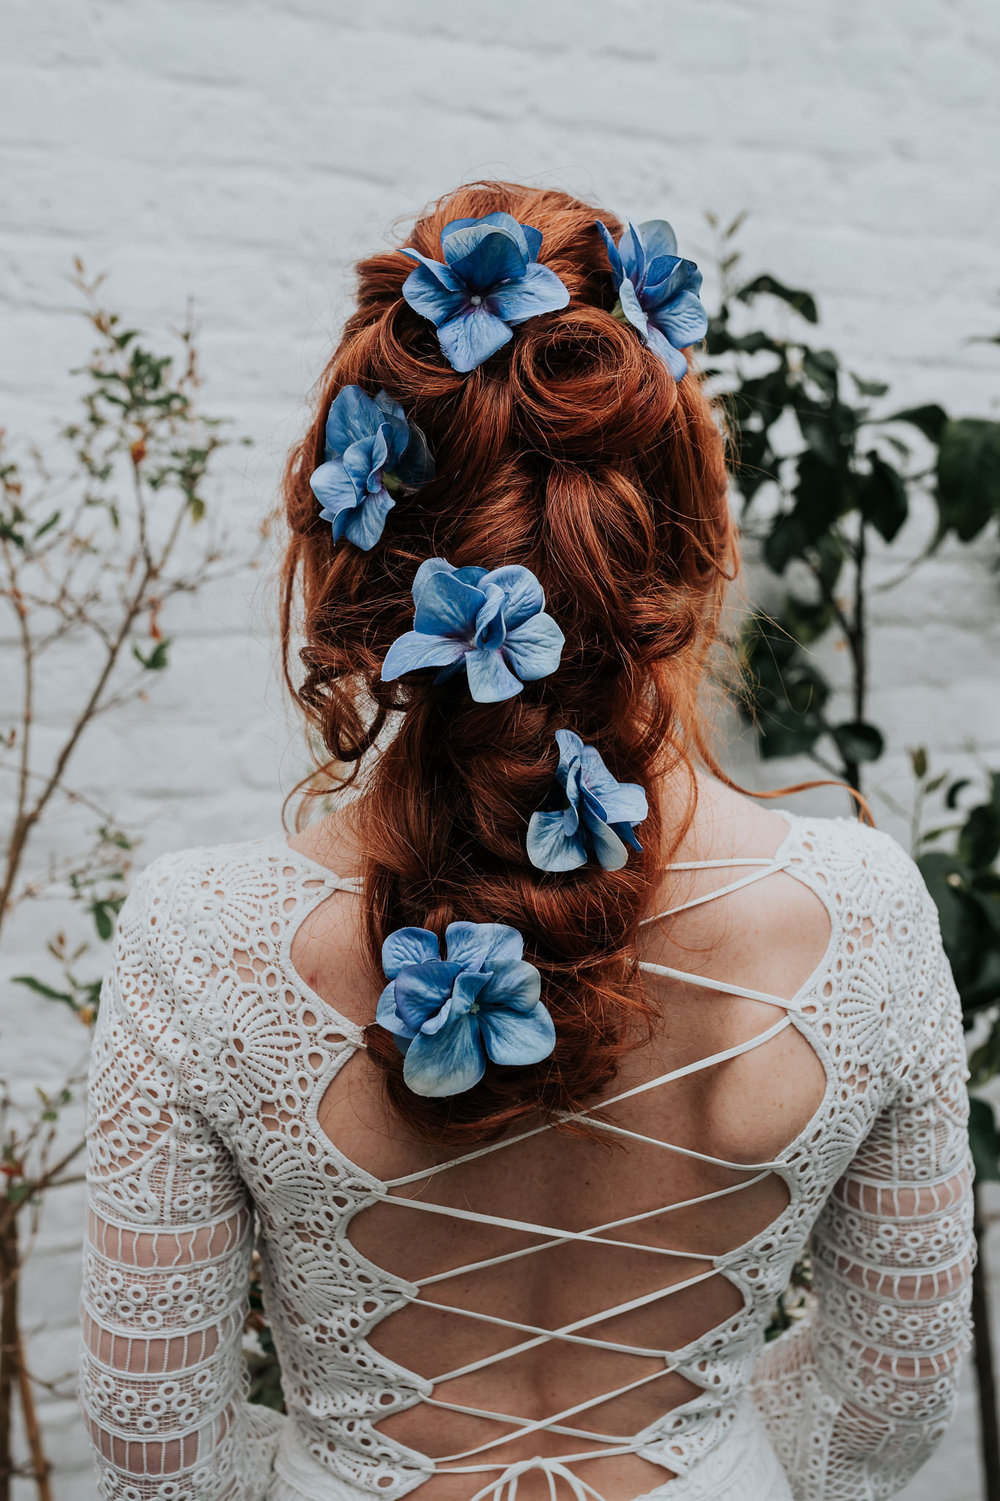 Go for a pop of colour! - Romantically scattered hydrangeas across your hair with the Gypsy Rose Vintage hair pins.